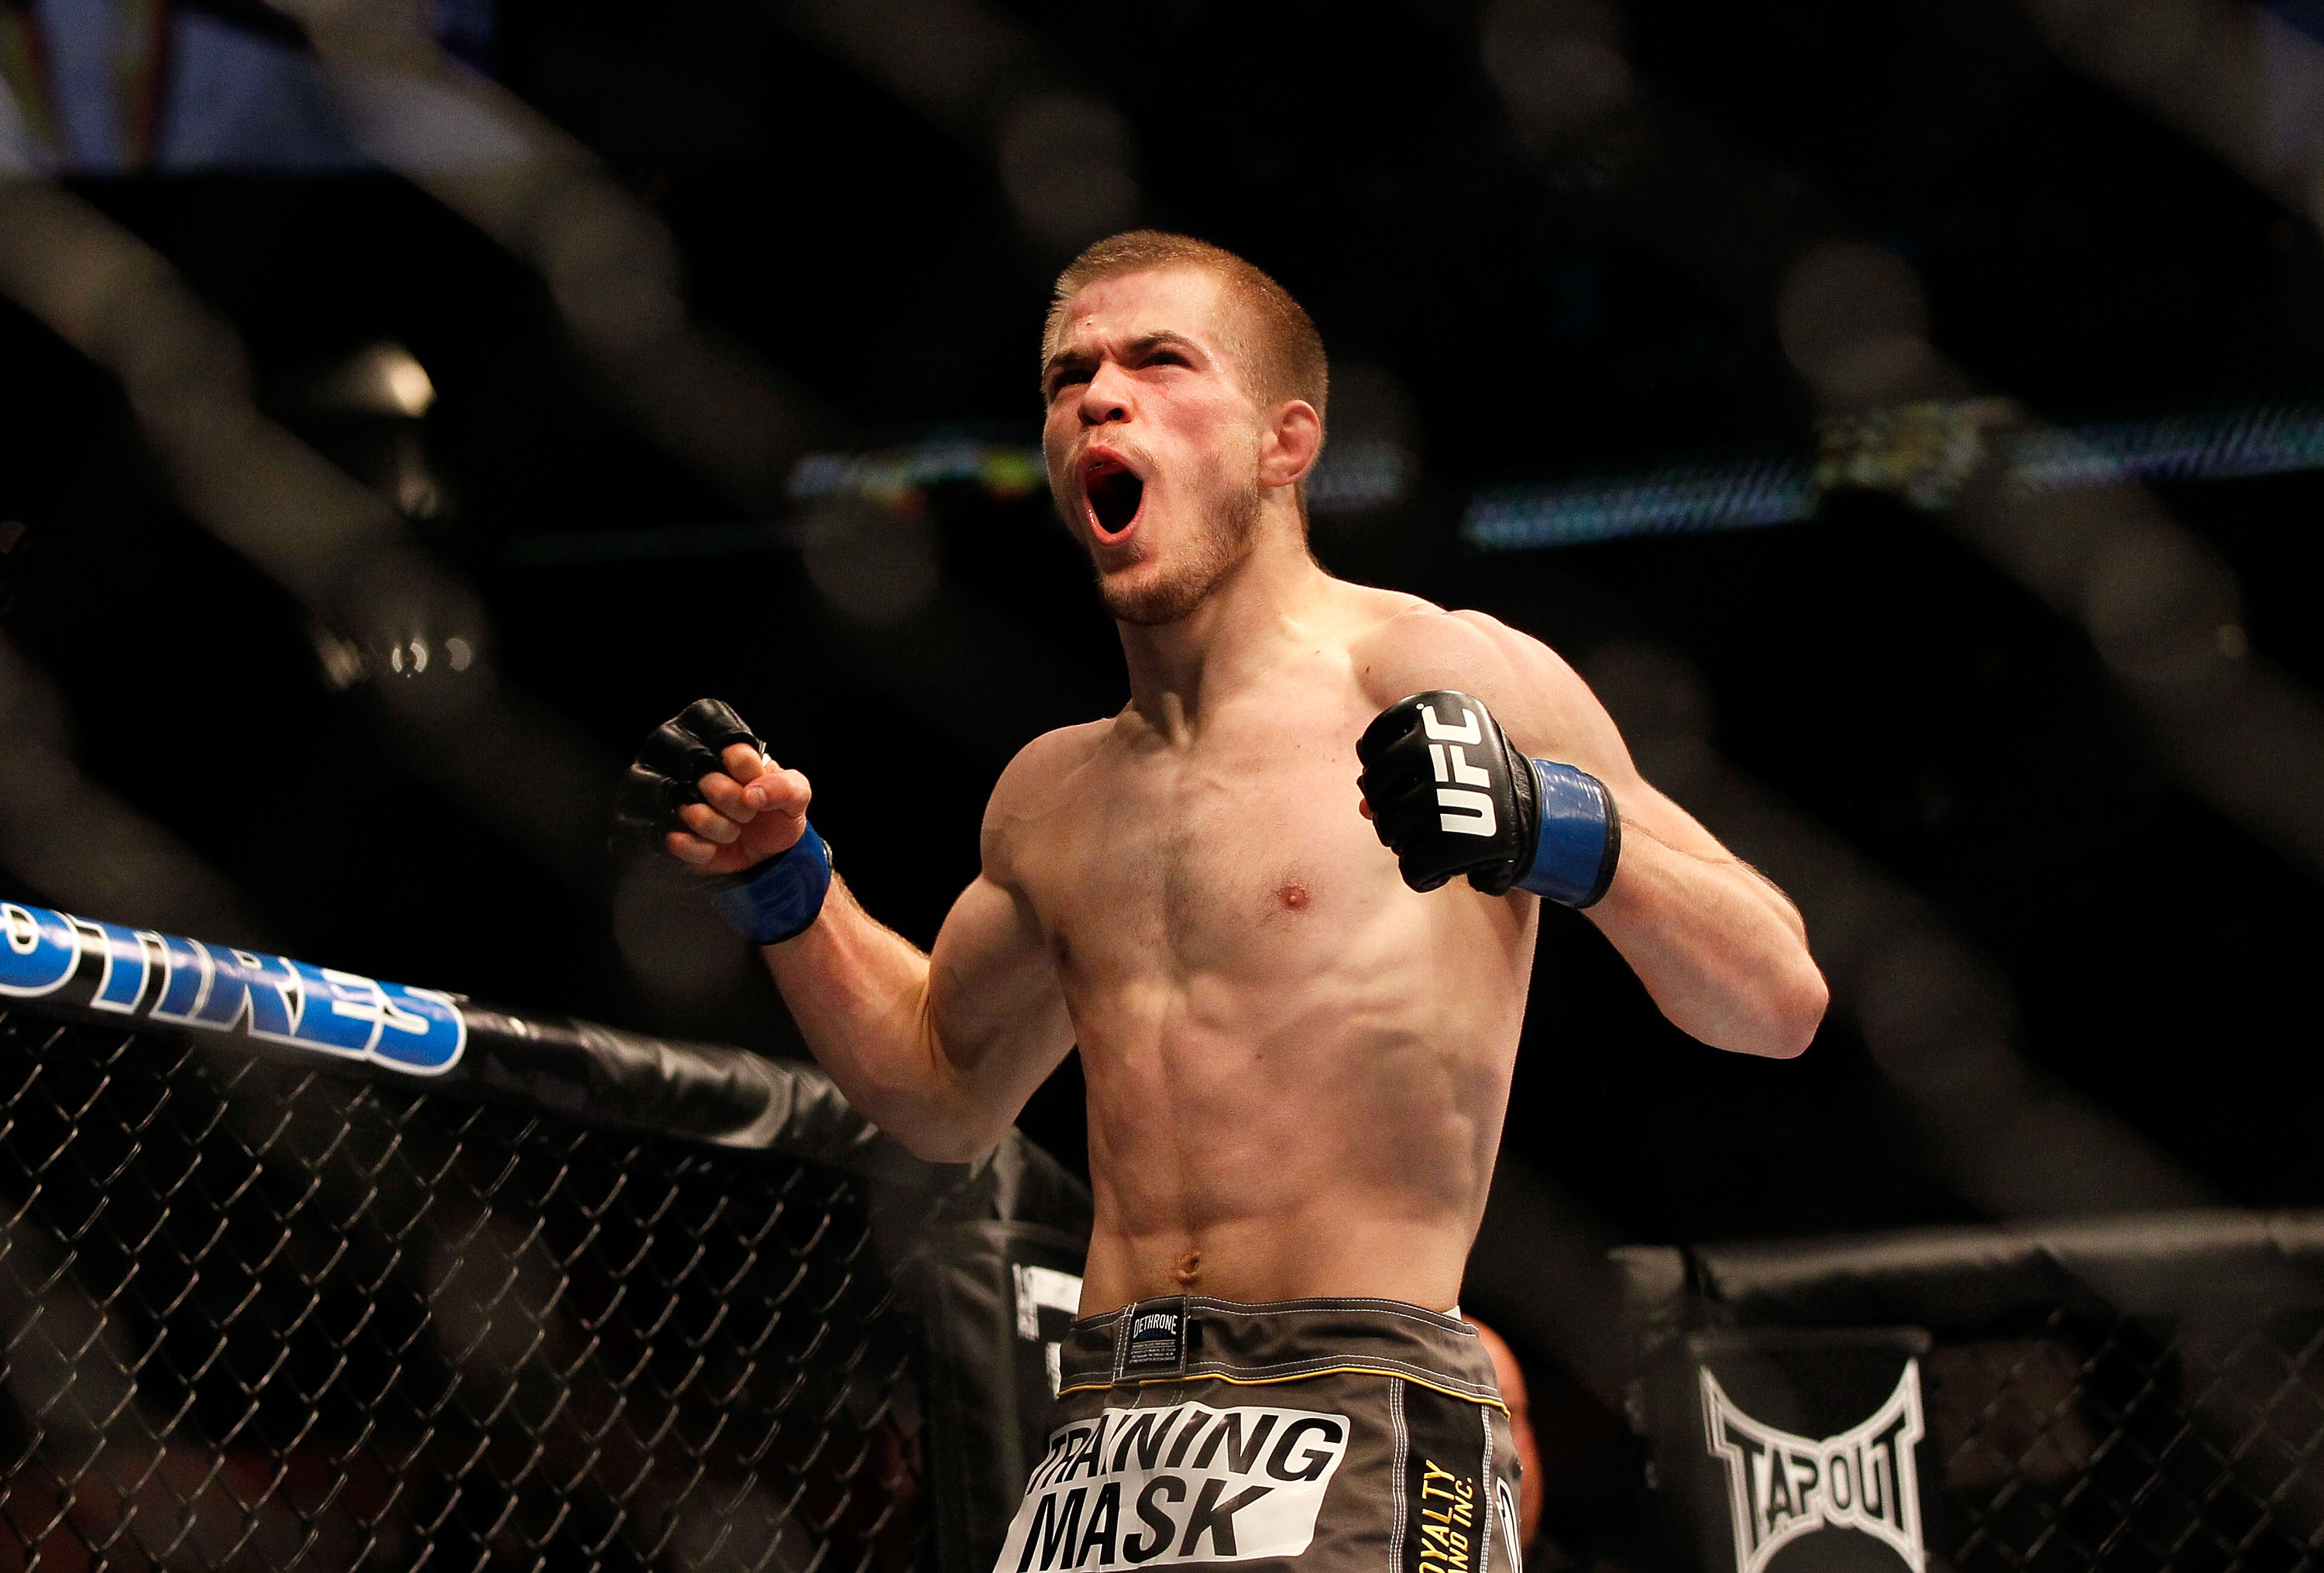 Michael McDonald will fight Renan Barao for the bantamweight championship on Feb. 16. (Getty Images)